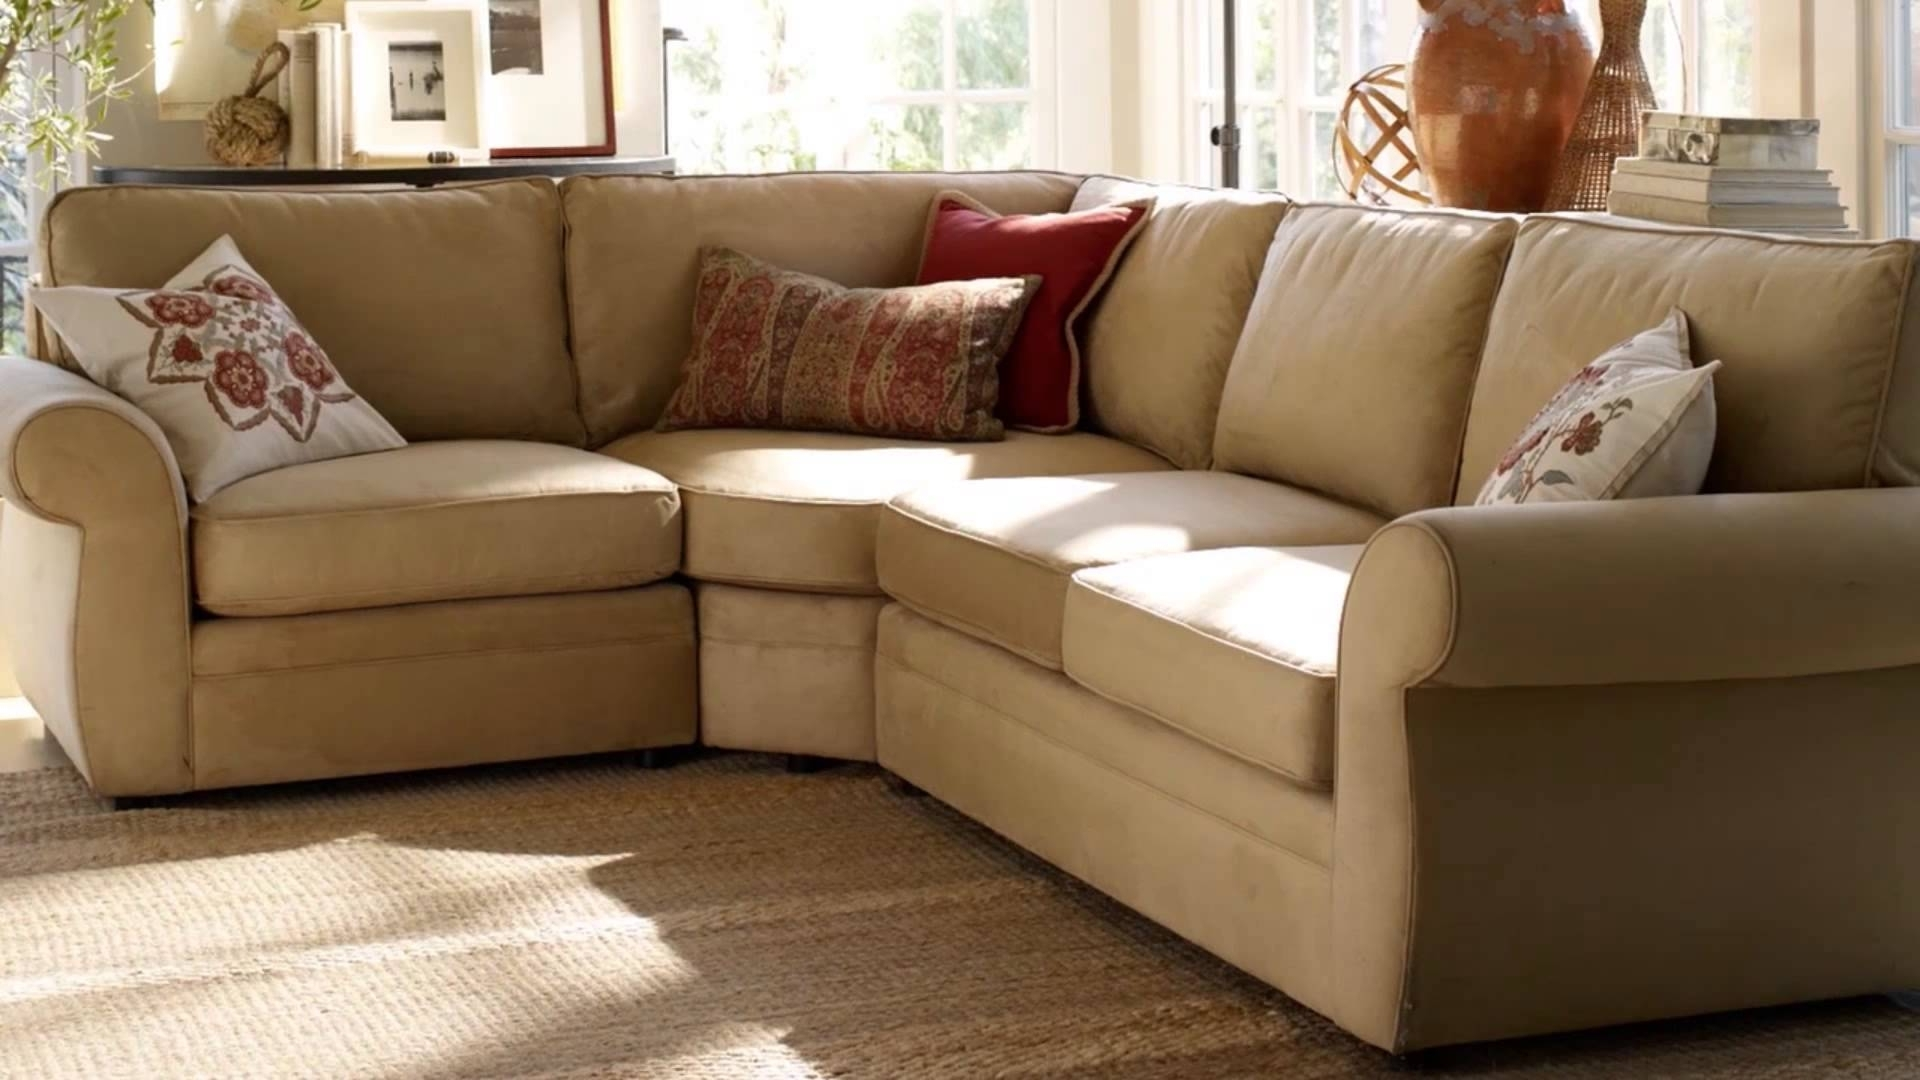 Pottery Barn – Youtube In 2017 Pottery Barn Sectional Sofas (View 5 of 15)